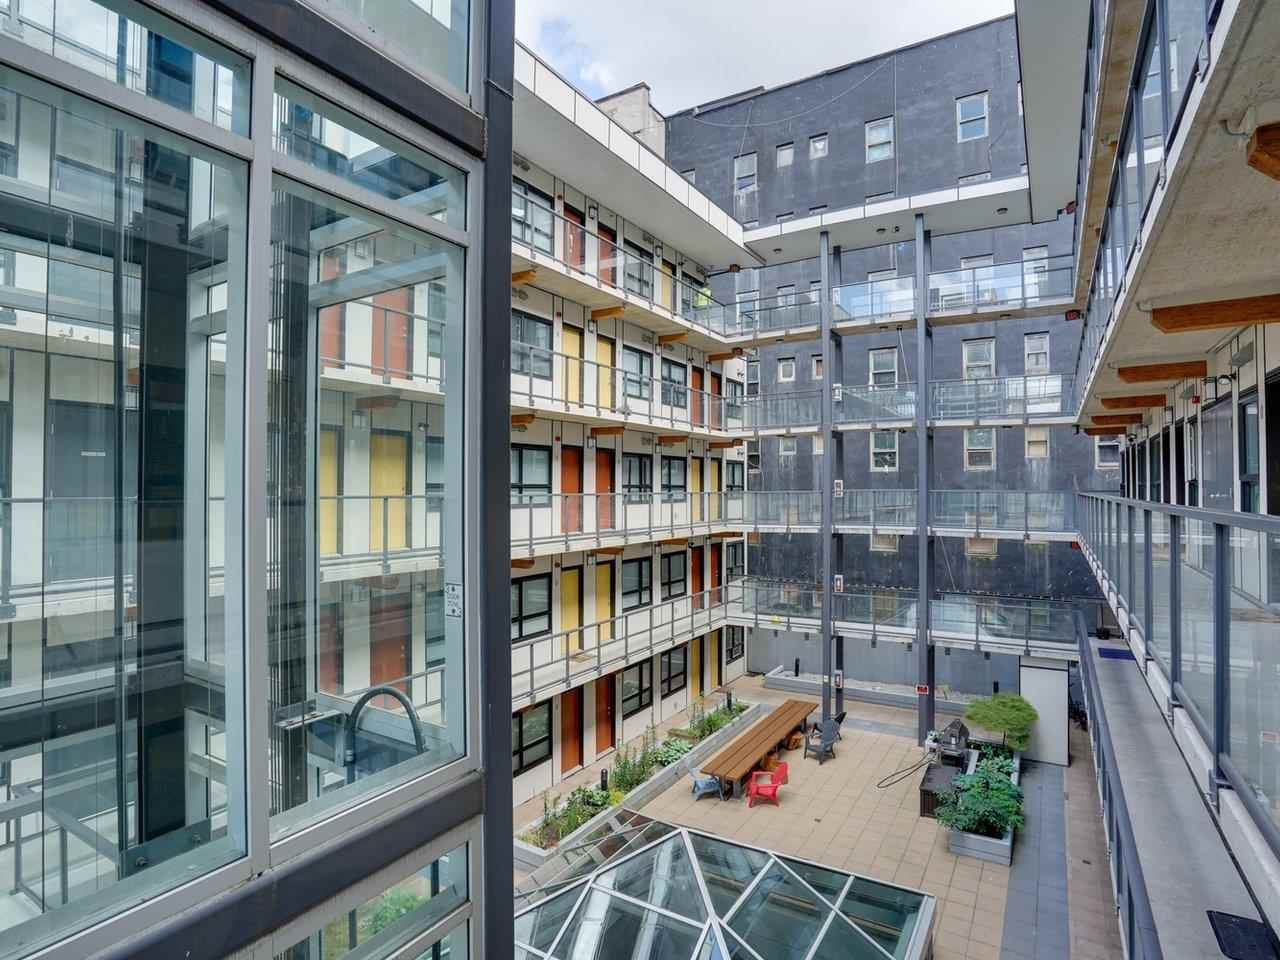 419 138 E HASTINGS STREET - Downtown VE Apartment/Condo for sale, 1 Bedroom (R2591060) - #2